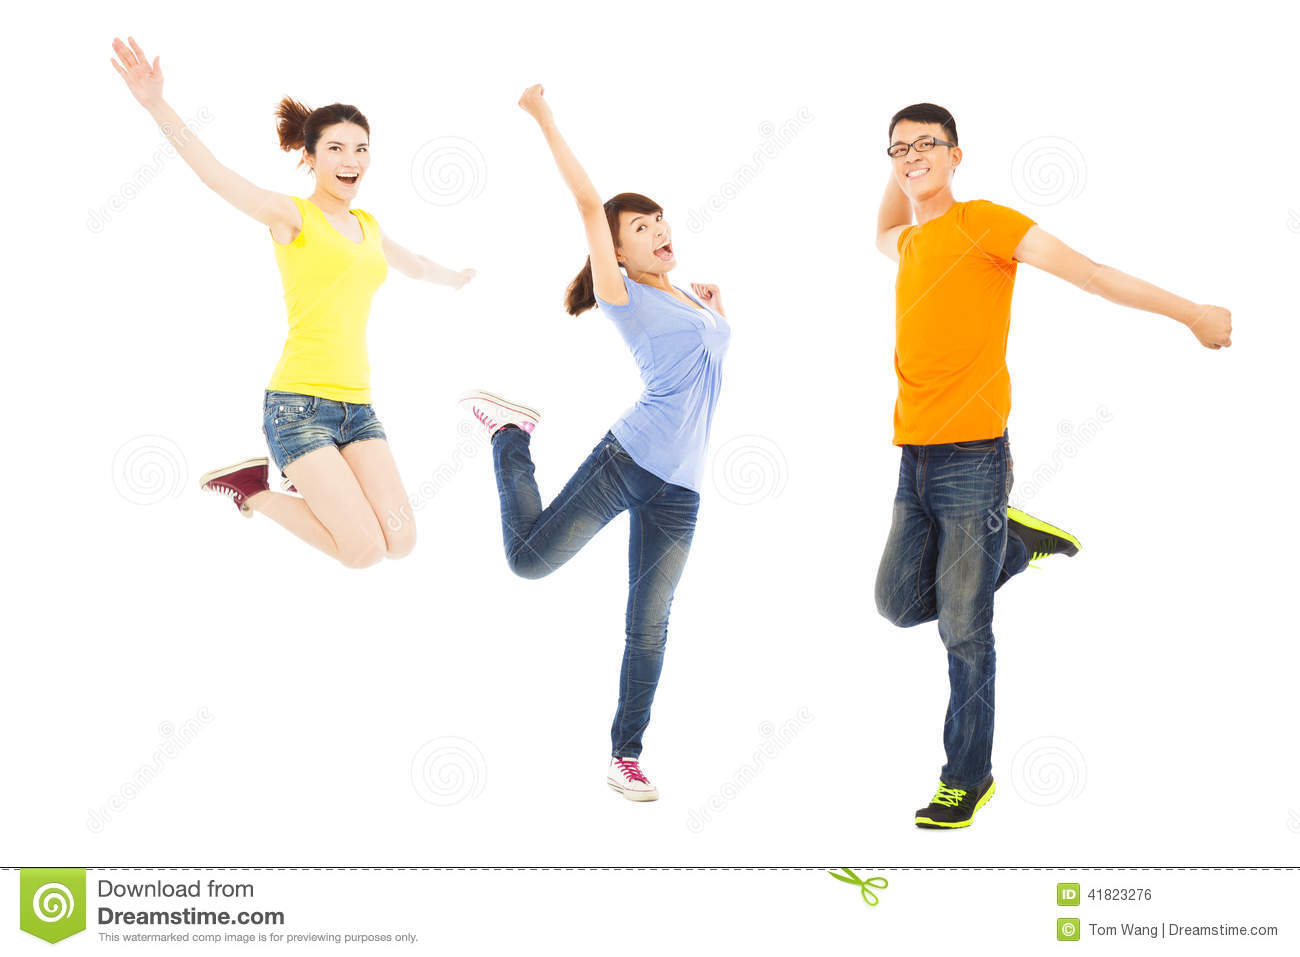 happy-young-people-dancing-jumping-over-